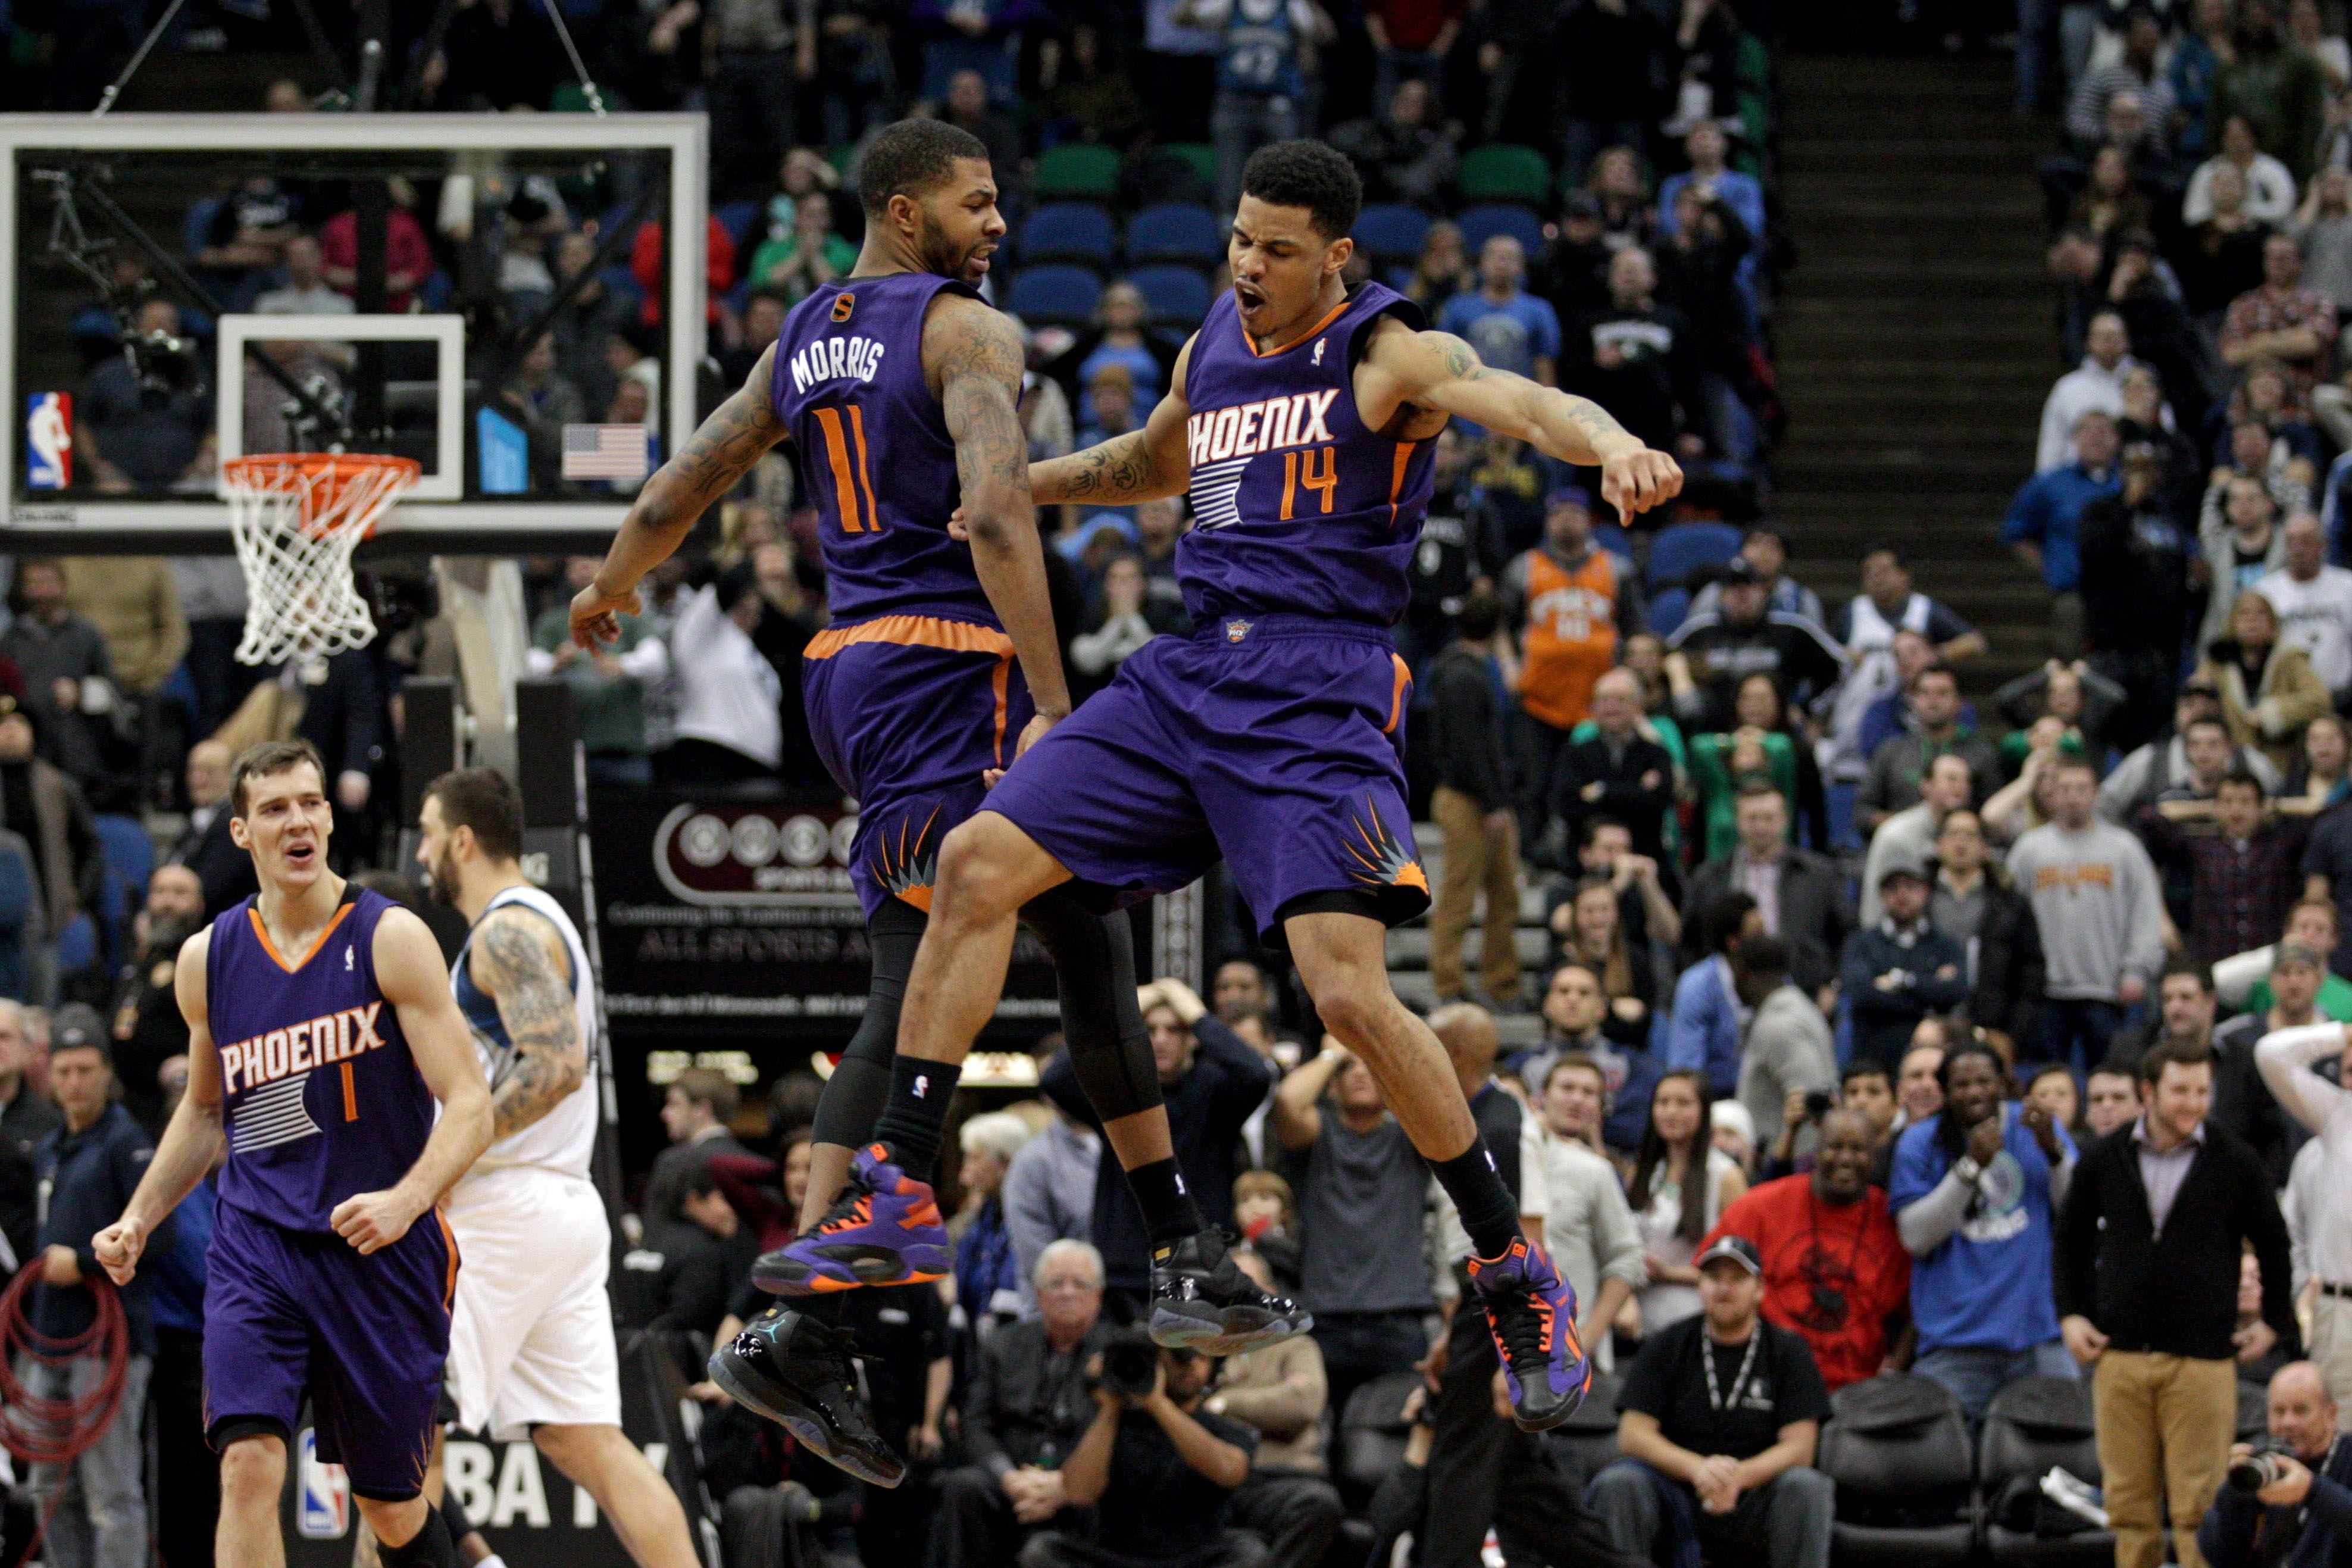 Markieff Morris y Gerald Green, catalizadores del cambio | © USA TODAY Sports